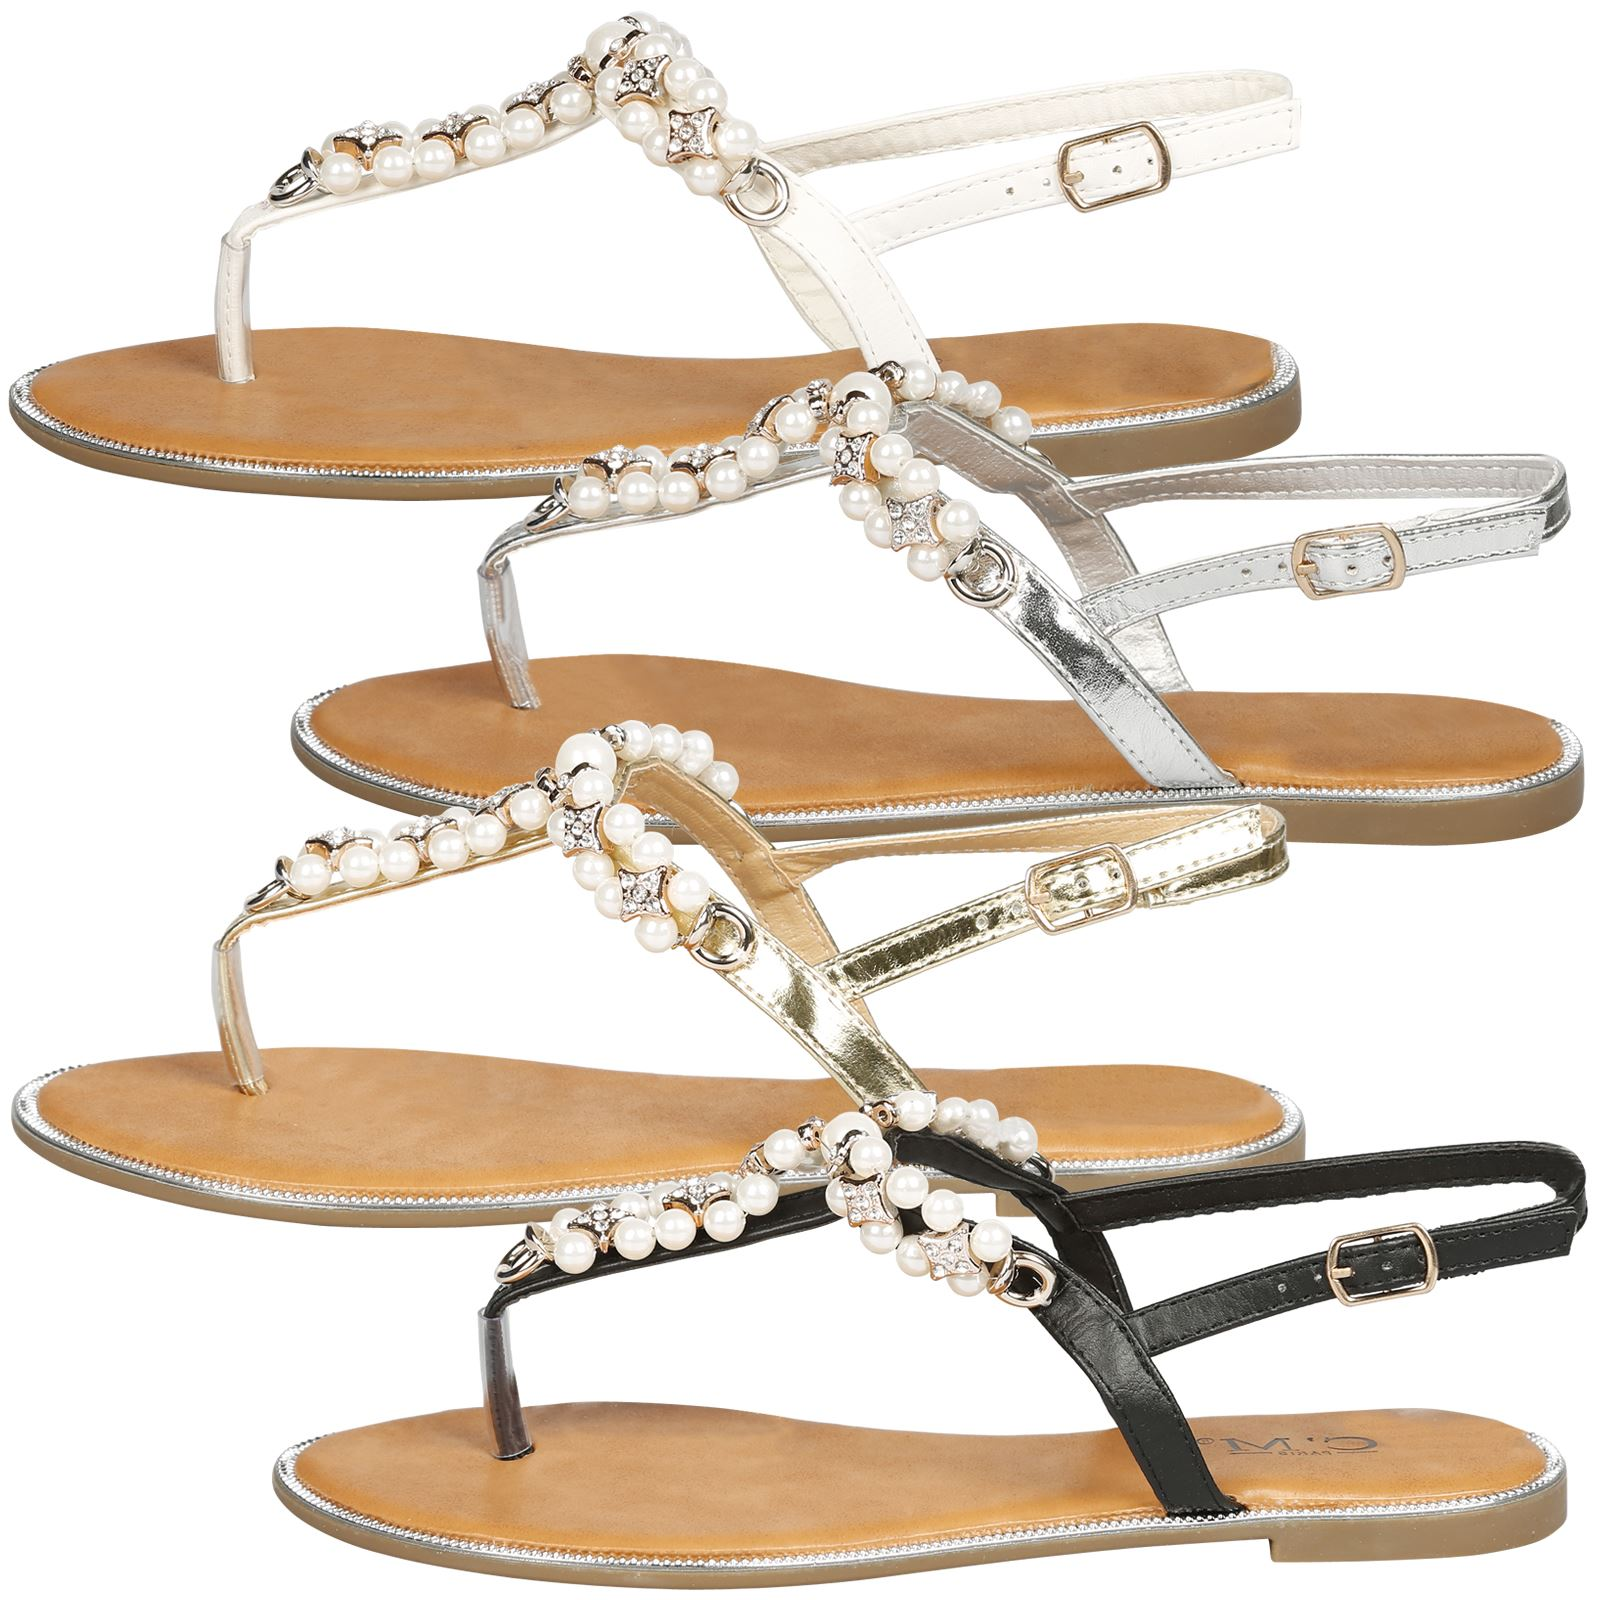 Details about WOMENS NEW LADIES THONG PEARL STYLE SUMMER DRESS BEACH CRYSTAL  STRAPPY SANDALS